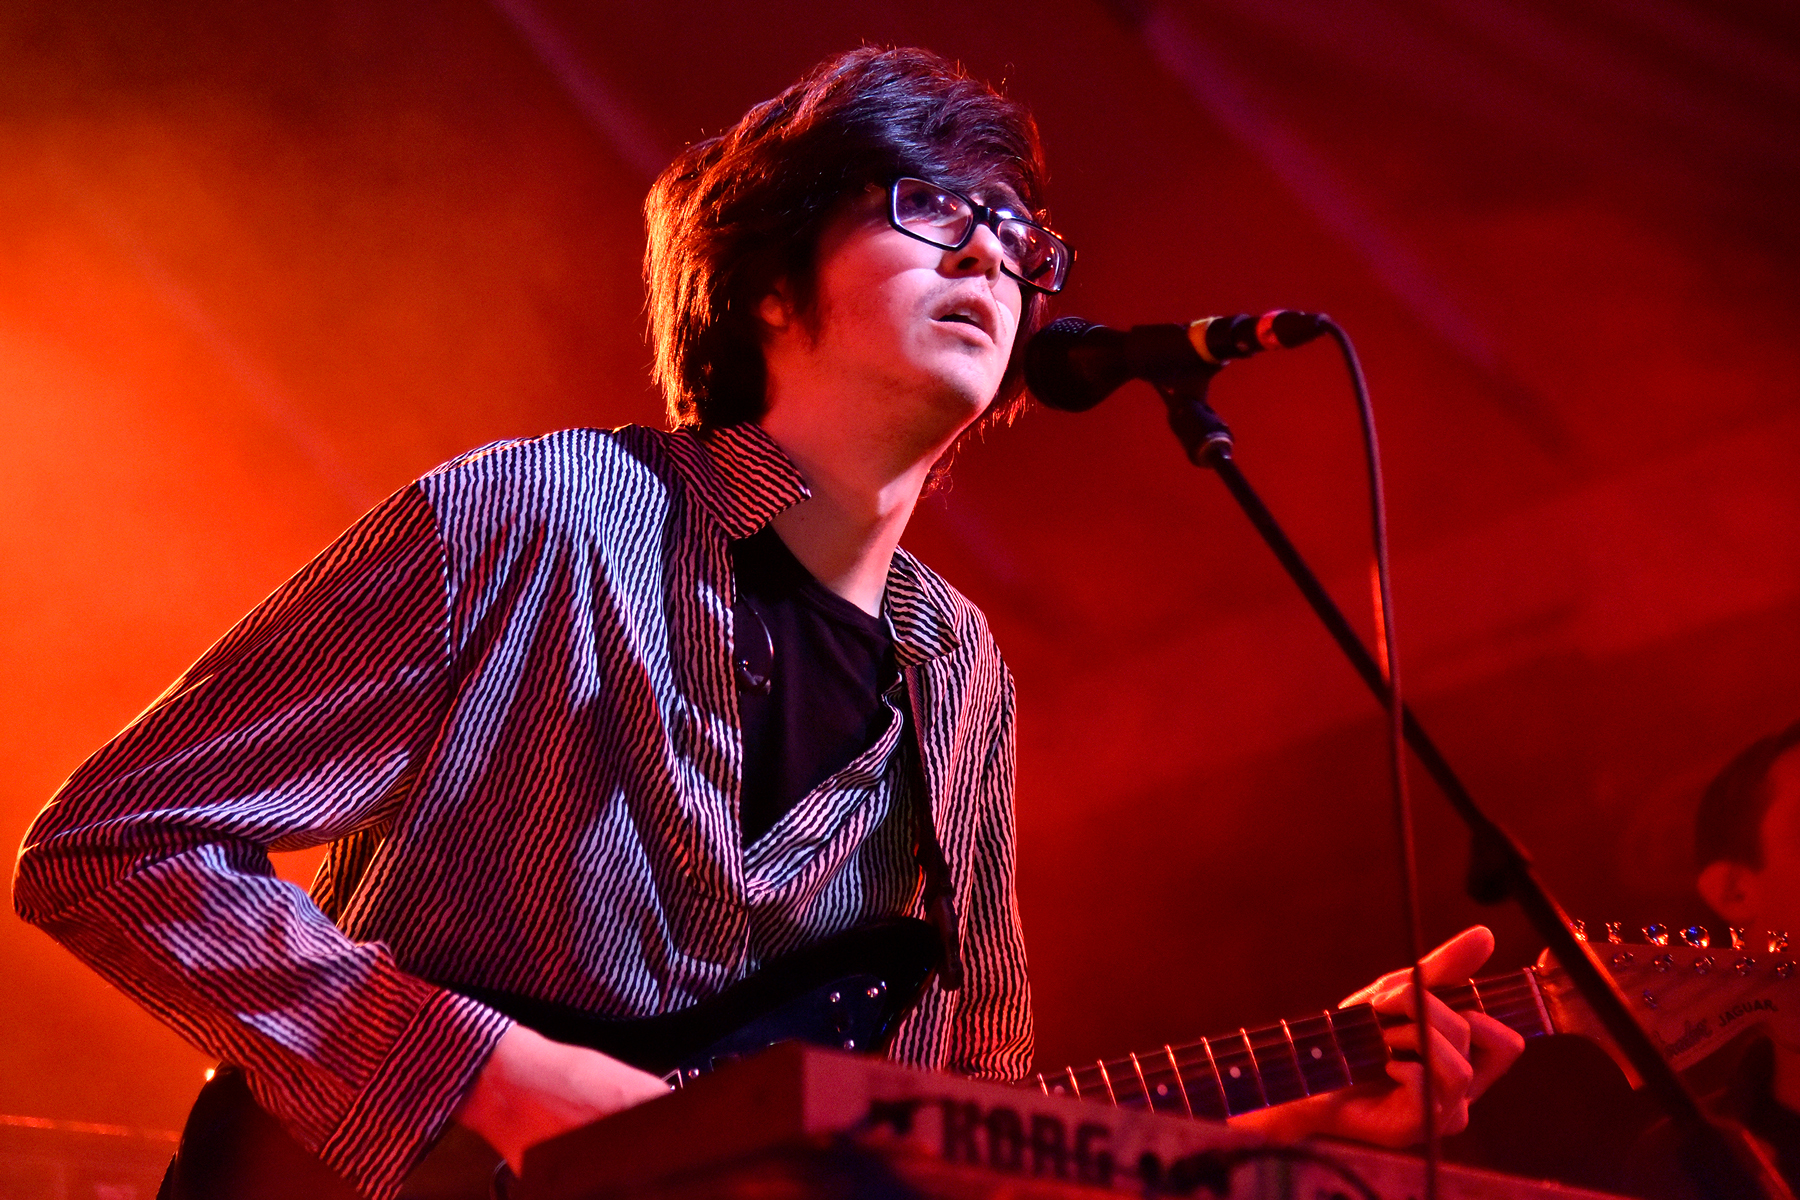 AUSTIN, TEXAS - MARCH 14: Will Toledo of Car Seat Headrest performs at the Ticketmaster showcase during the 2019 SXSW Conference and Festival at Stubbs Bar-B-Que on March 14, 2019 in Austin, Texas. (Photo by Tim Mosenfelder/Getty Images)